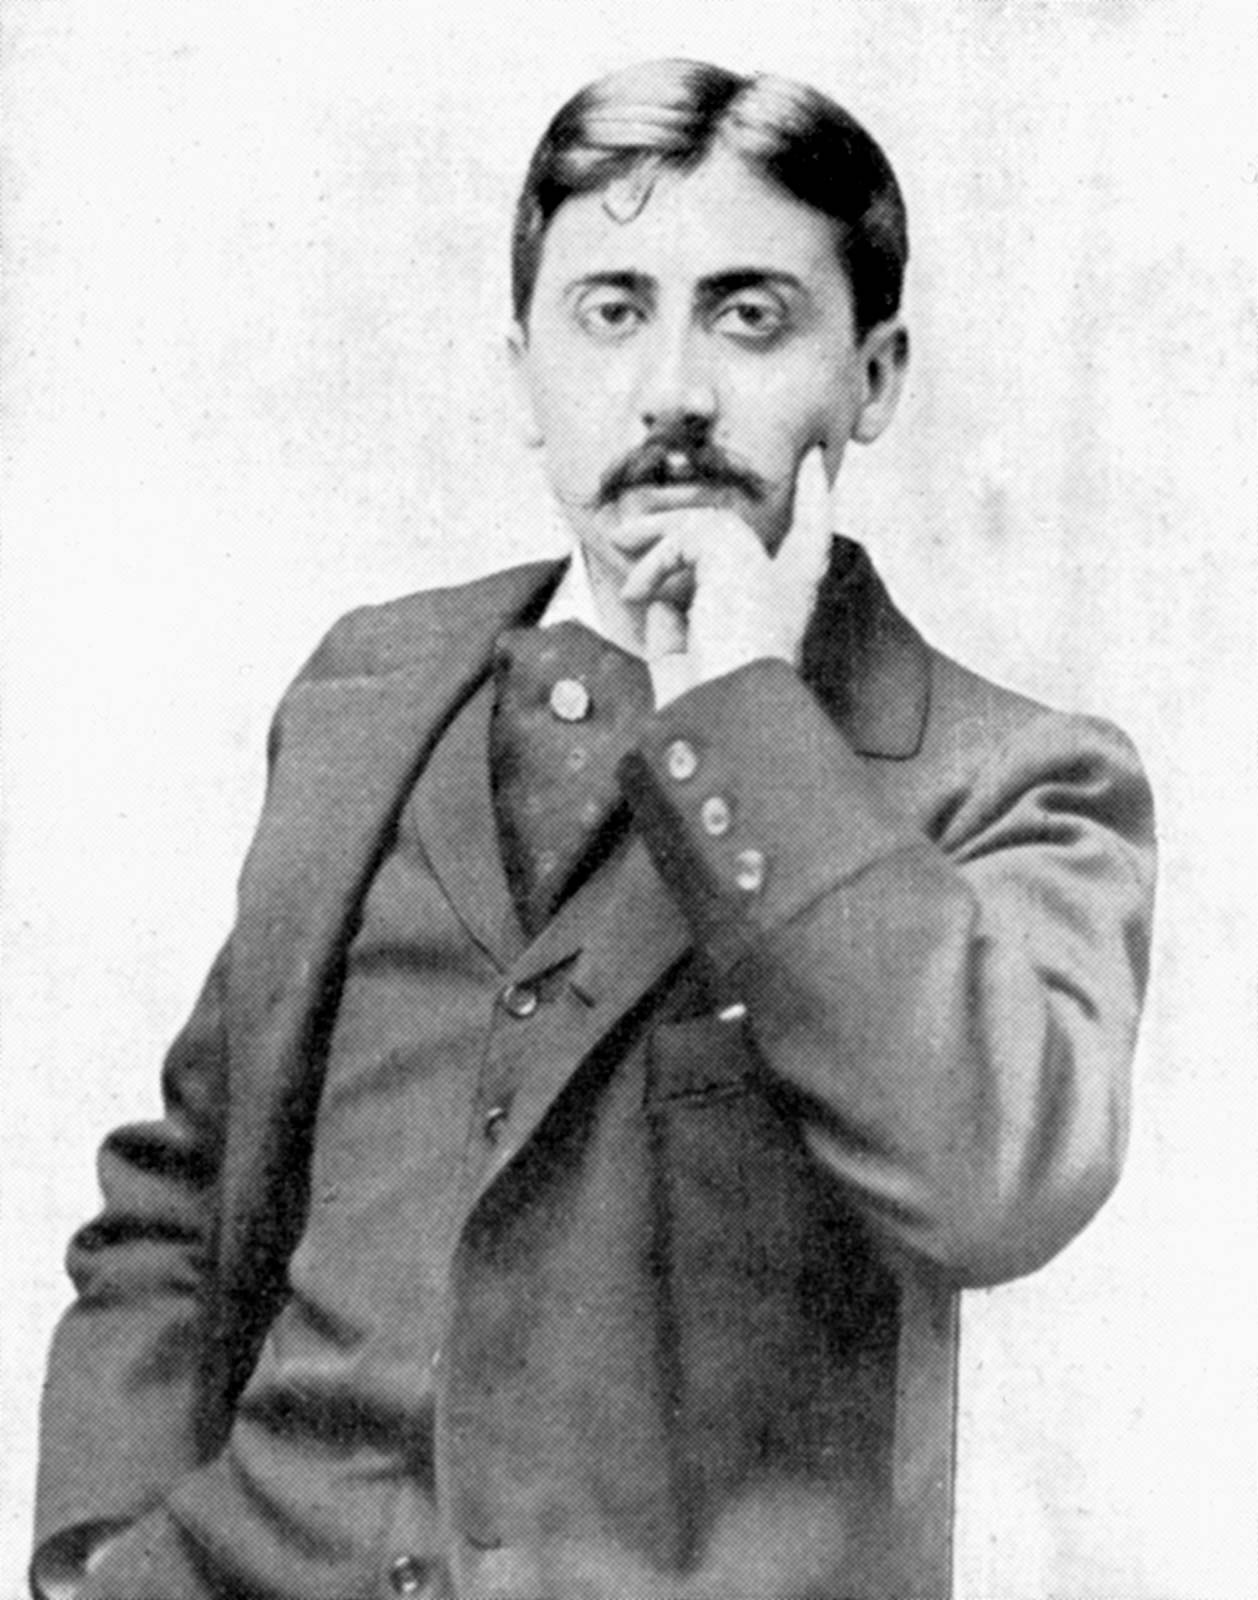 e9a059b74076f2bba86b83c748a97a13 2 - On Reading Proust: Jack Jordan on Marcel Proust's Masterpiece <em>In Search of Lost Time</em>